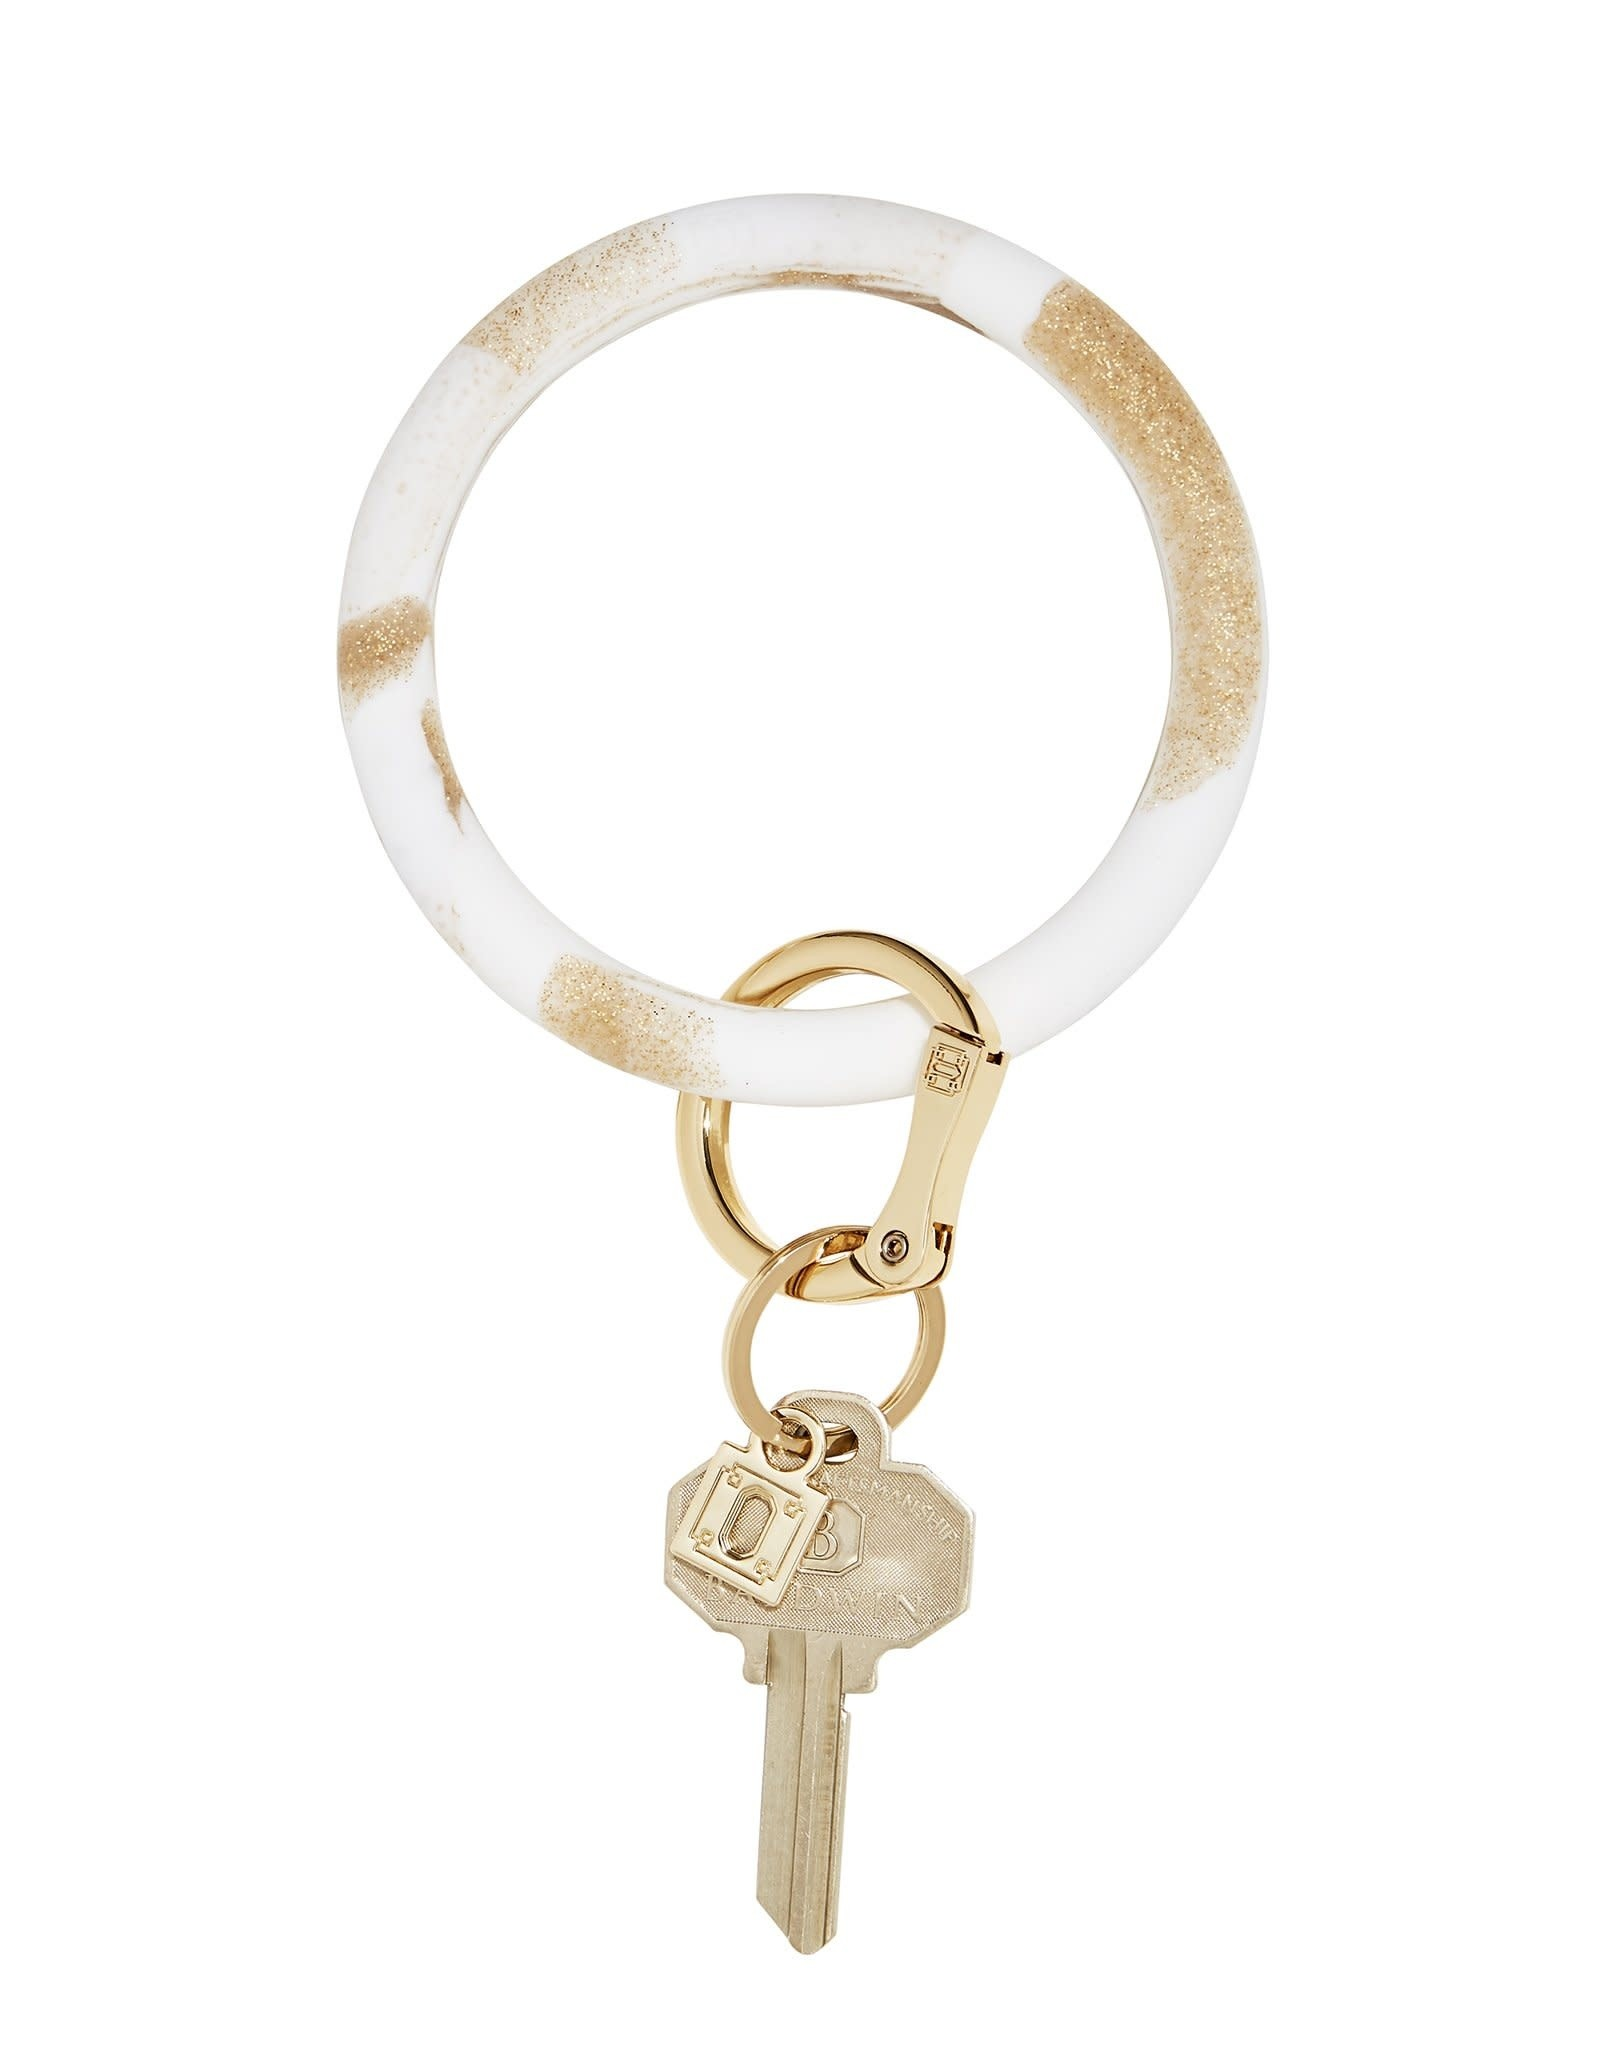 Big O Key Ring gold rush marble silicone